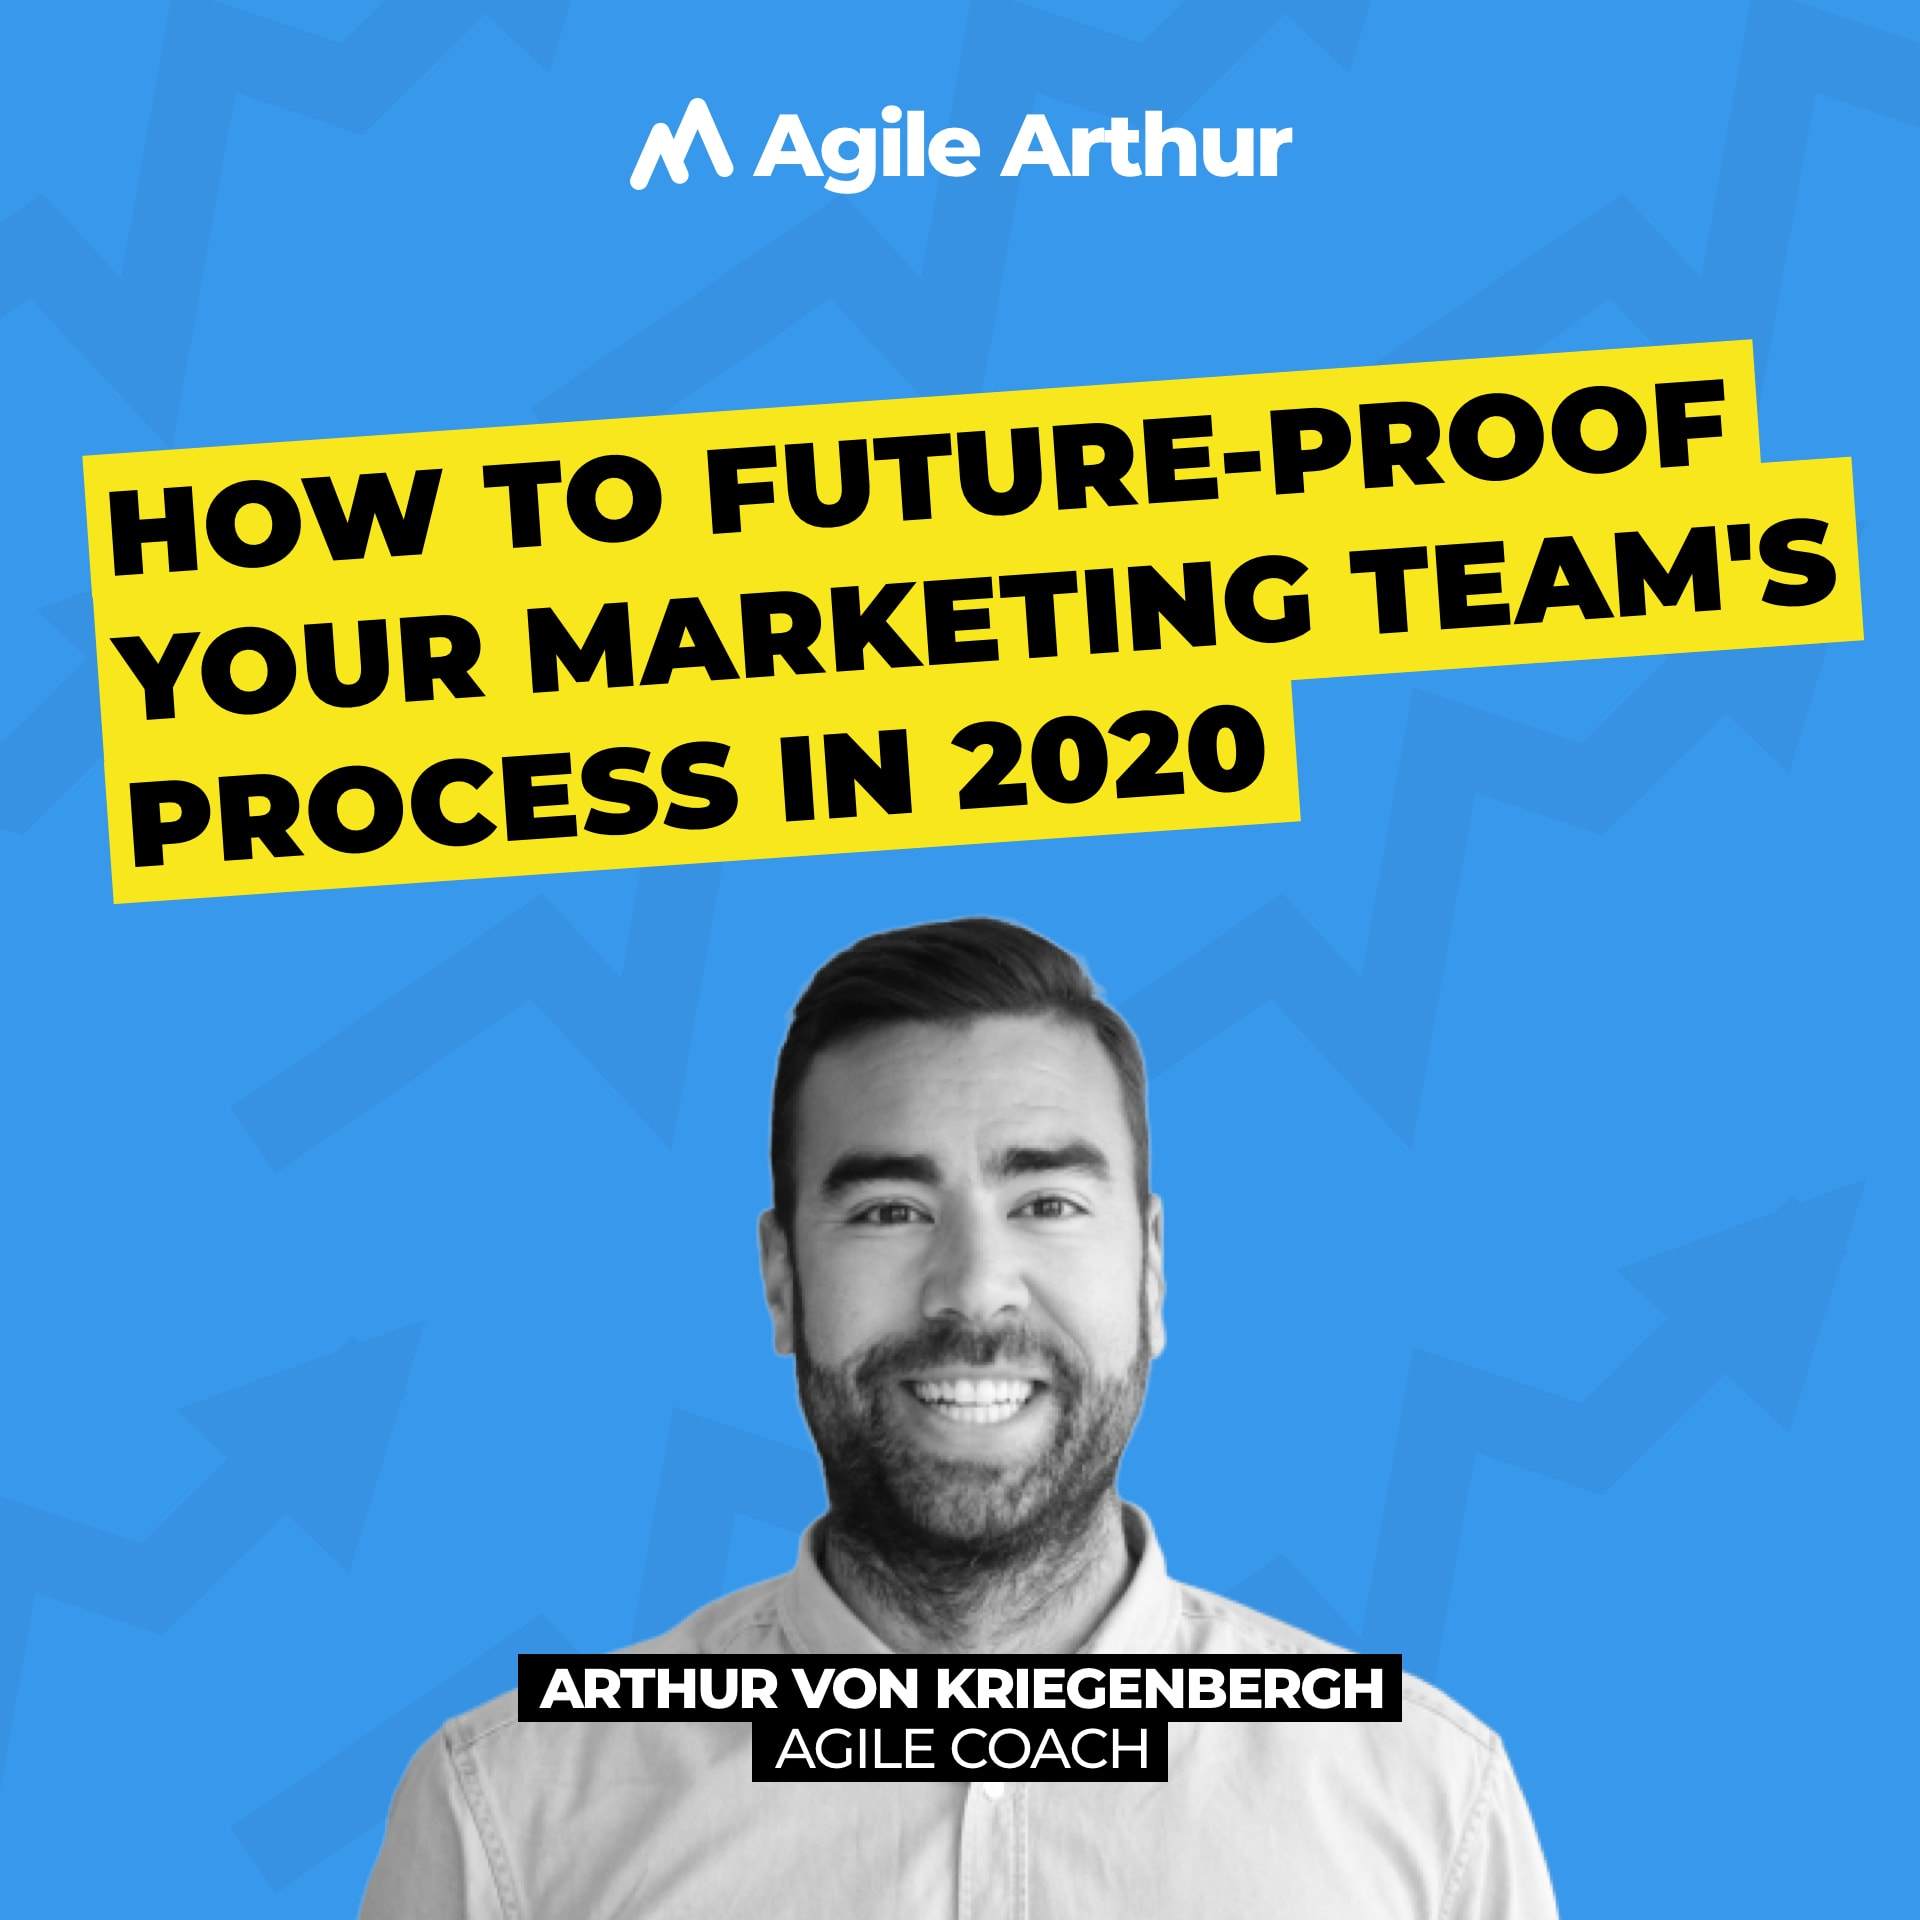 How to future-proof your marketing's team process promo with Arthur von Kriegenbergh